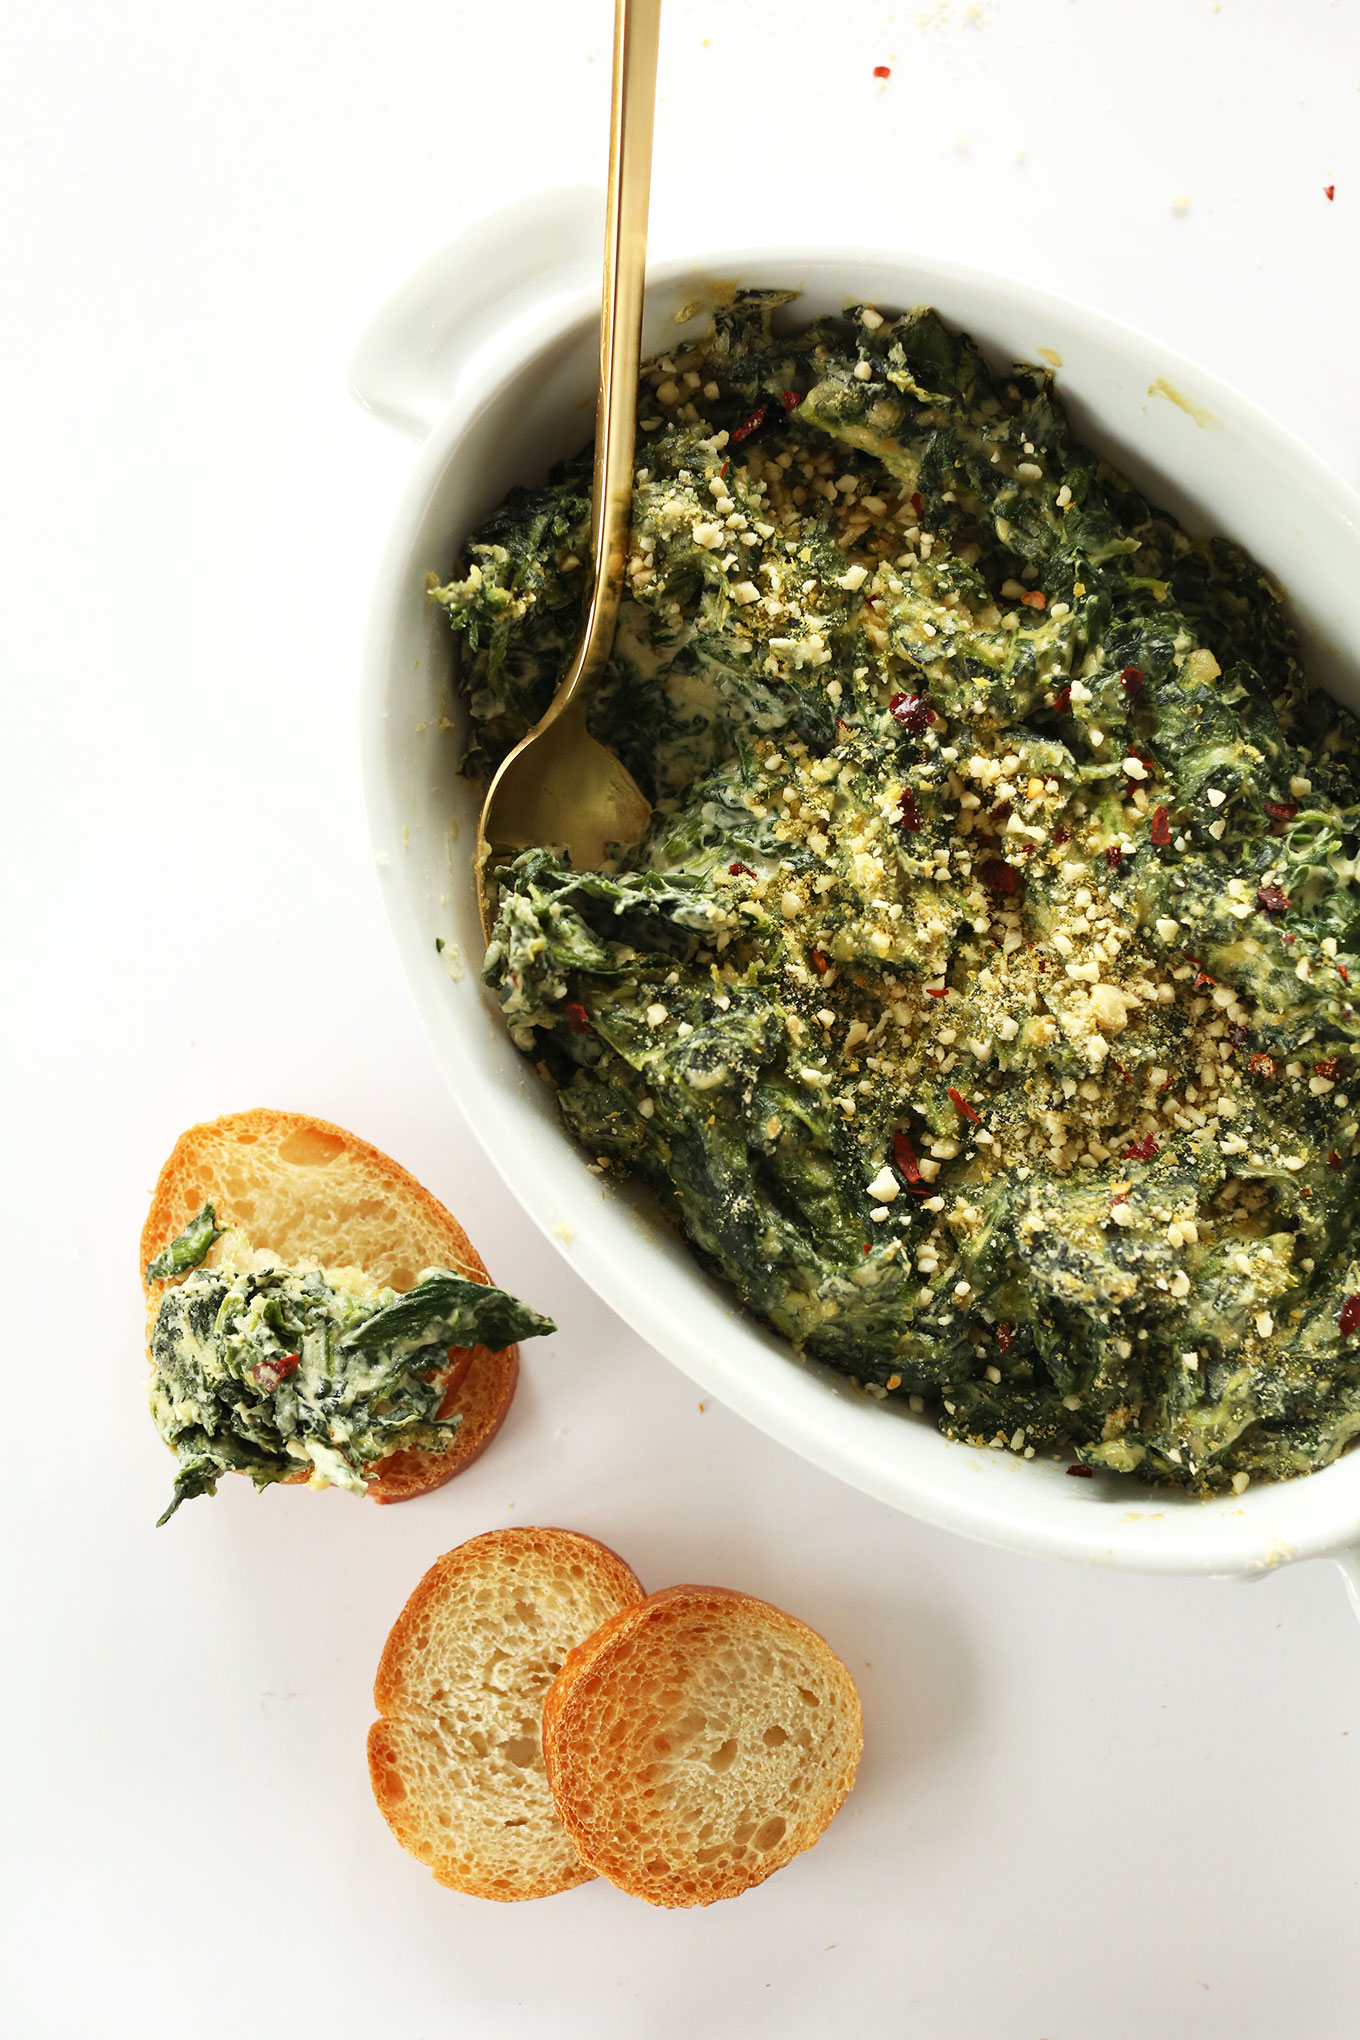 AMAZING Creamy Kale and Spinach Dip - completely dairy- and gluten-free and SO cheesy and delicious! #vegan #GF #minimalistbaker